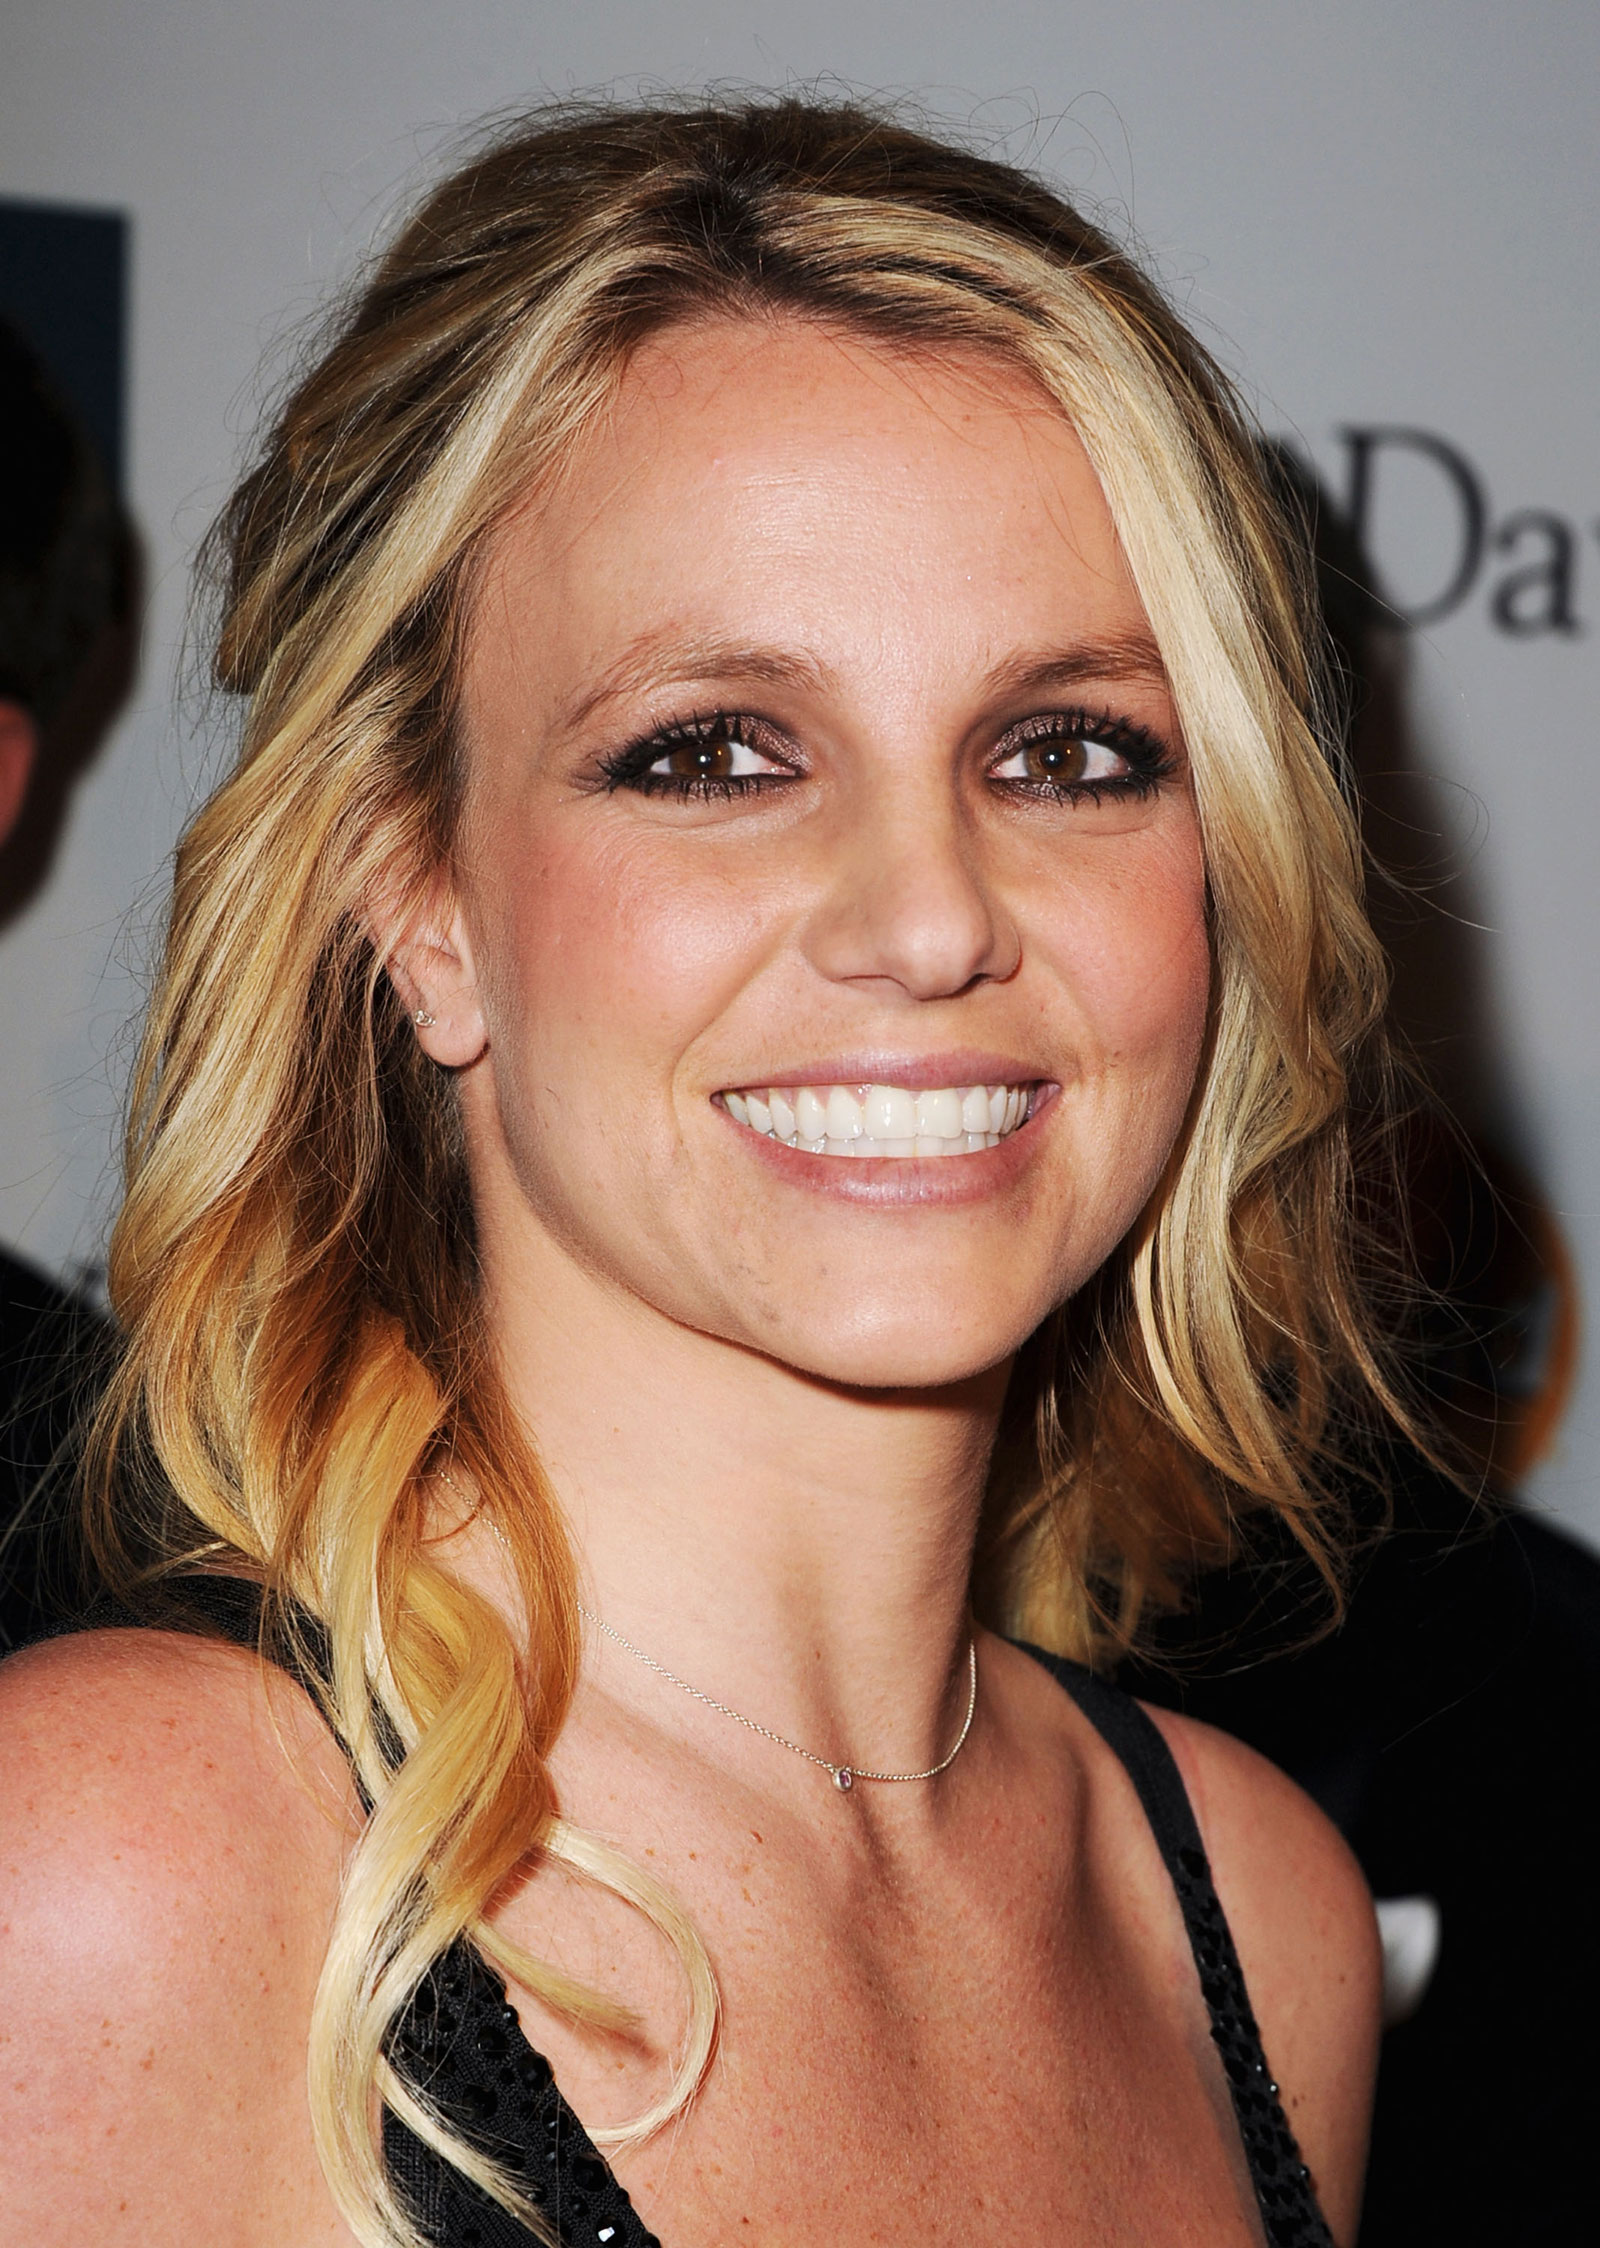 Celebrity Biography and photos: Britney Spears